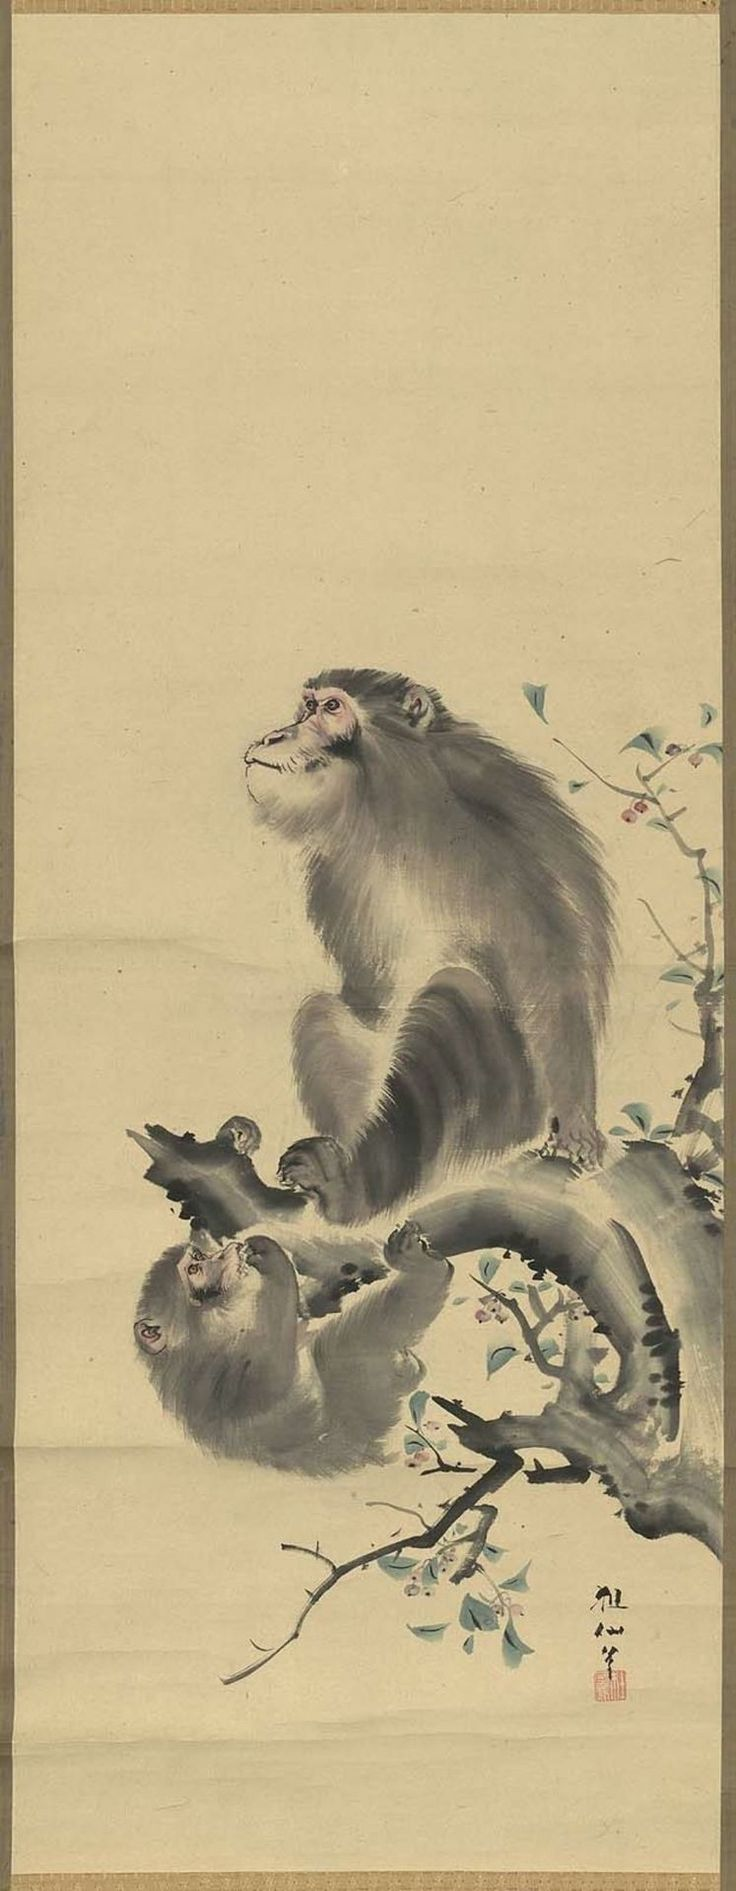 Monkeys on a Tree • 樹上二匹猿図 • Japanese, Edo period, 19th century • Mori Sosen, Japanese, 1747–1821; http://amyipaguana.tumblr.com/post/36182107780/monkeys-on-a-tree-japanese-edo-period